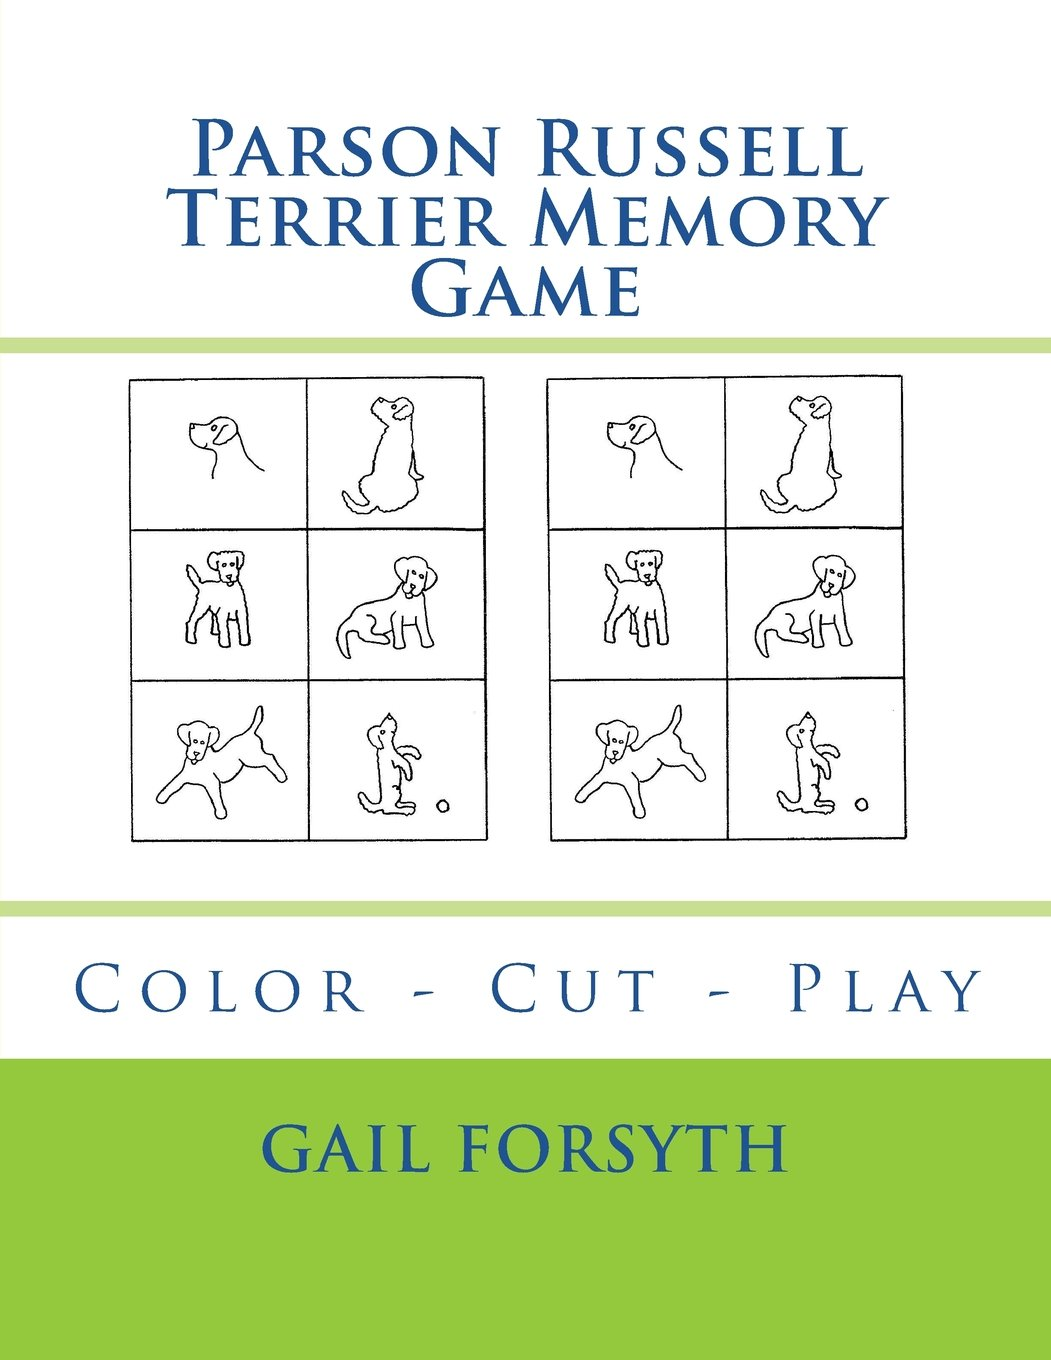 Parson Russell Terrier Memory Game: Color - Cut - Play PDF